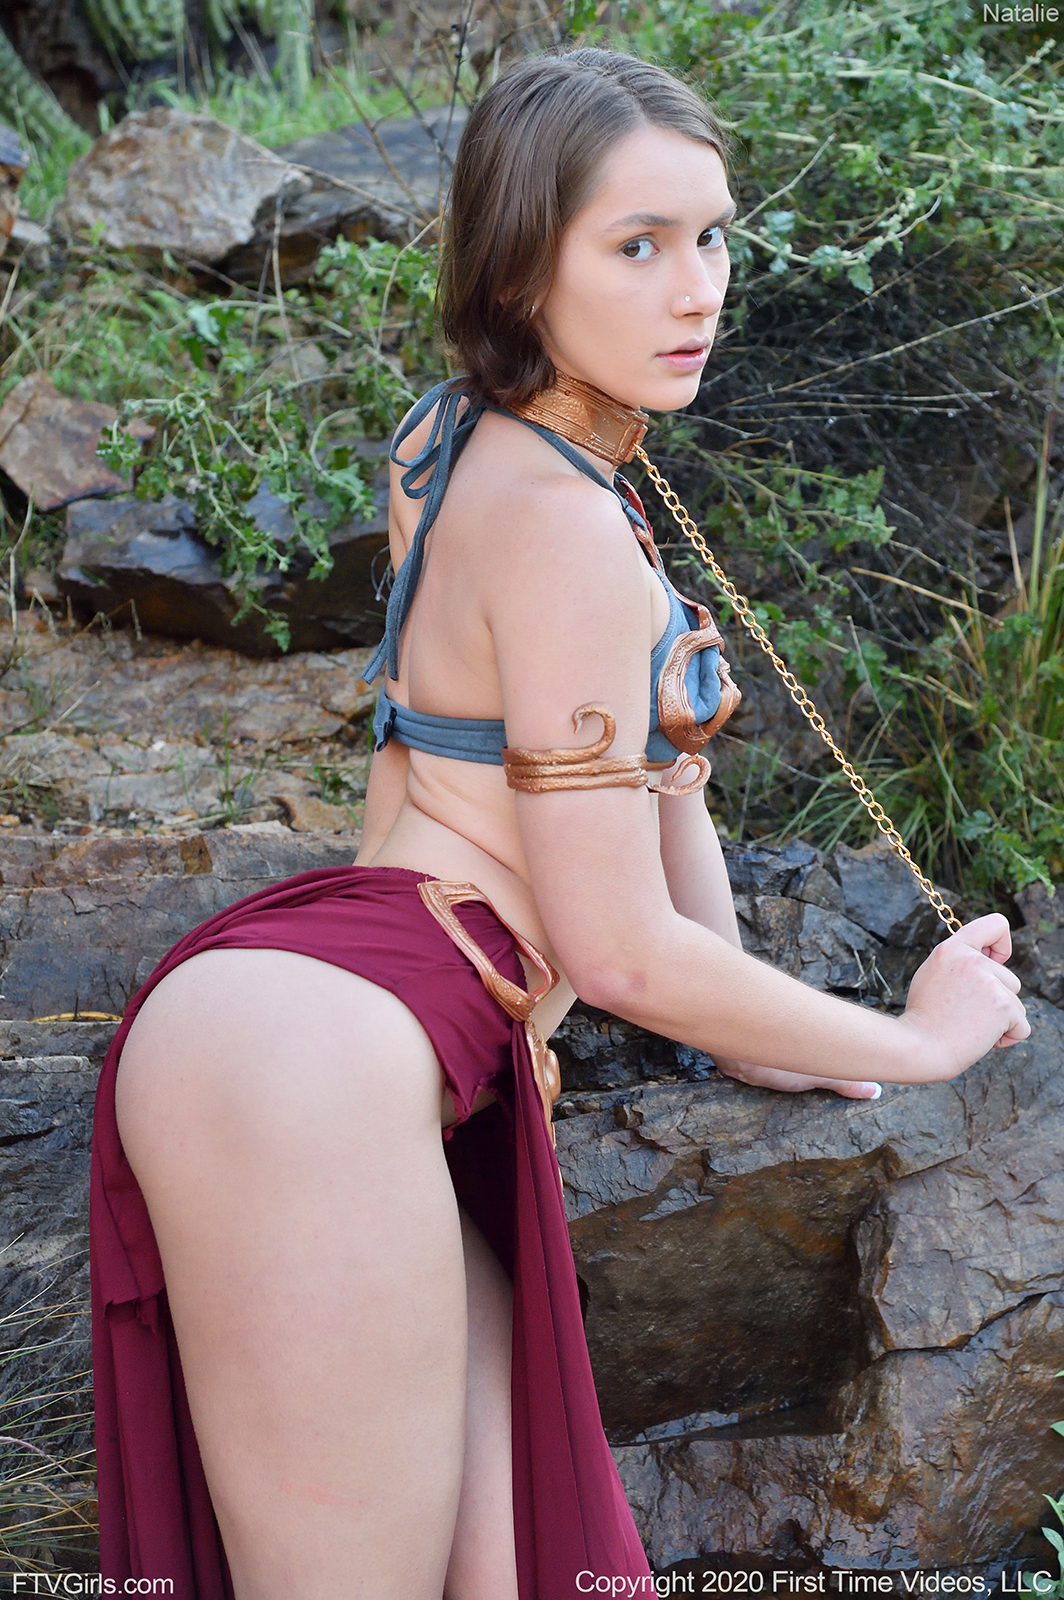 FTV Girls: Natalie Channels The Sexy Side Of the Force